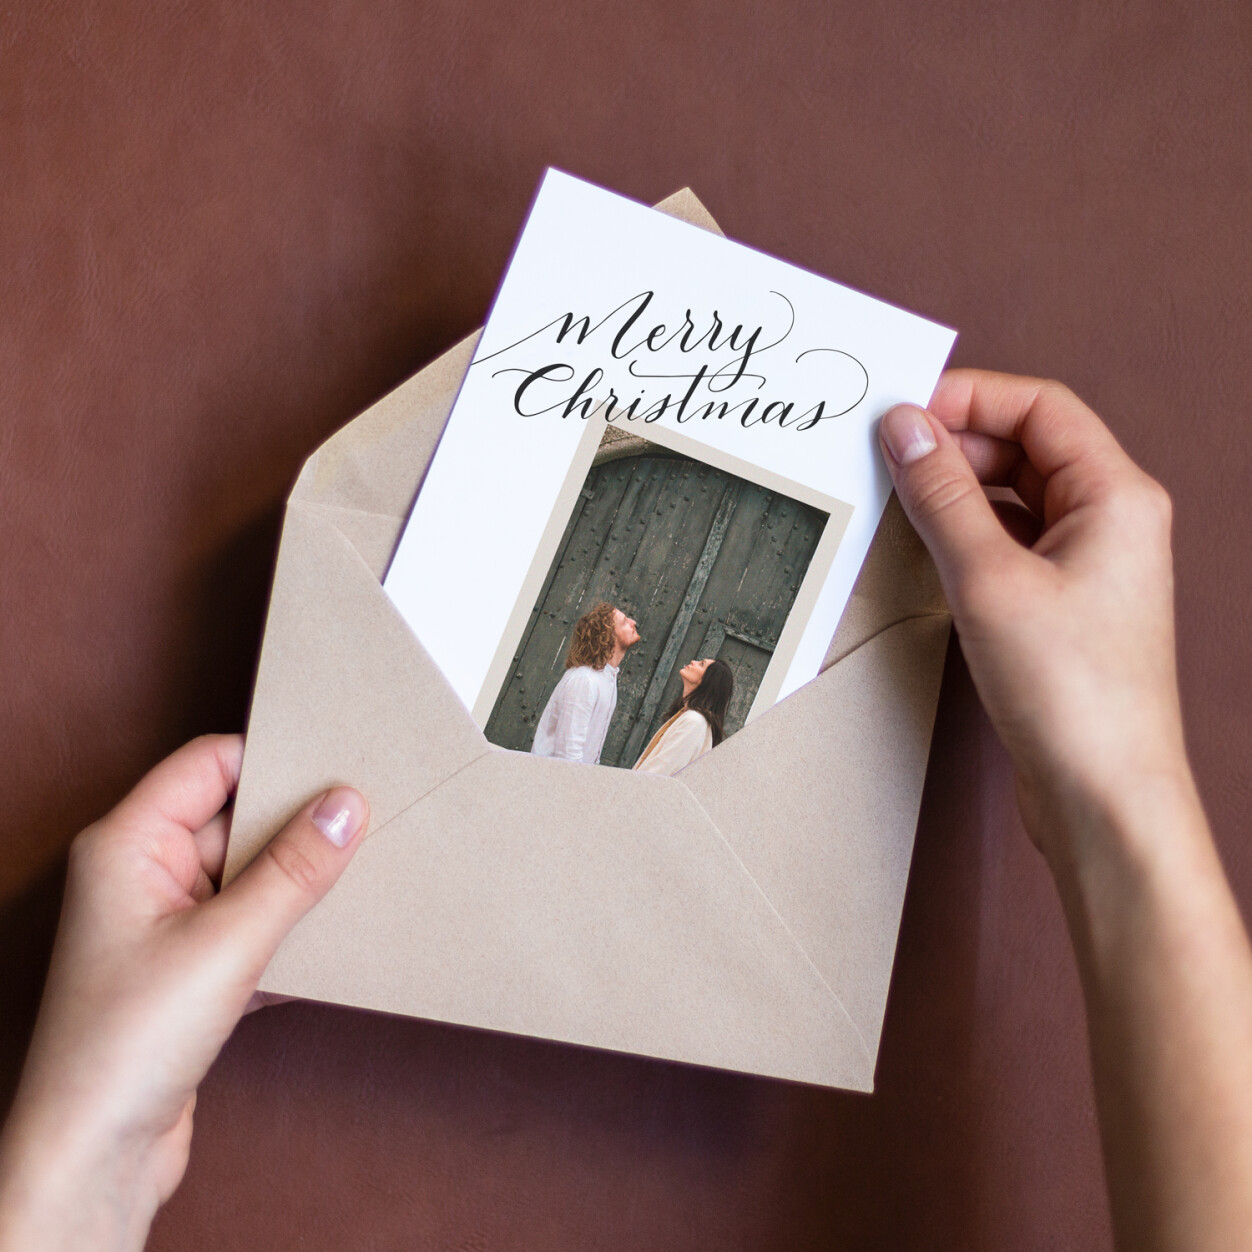 When to send your Christmas cards